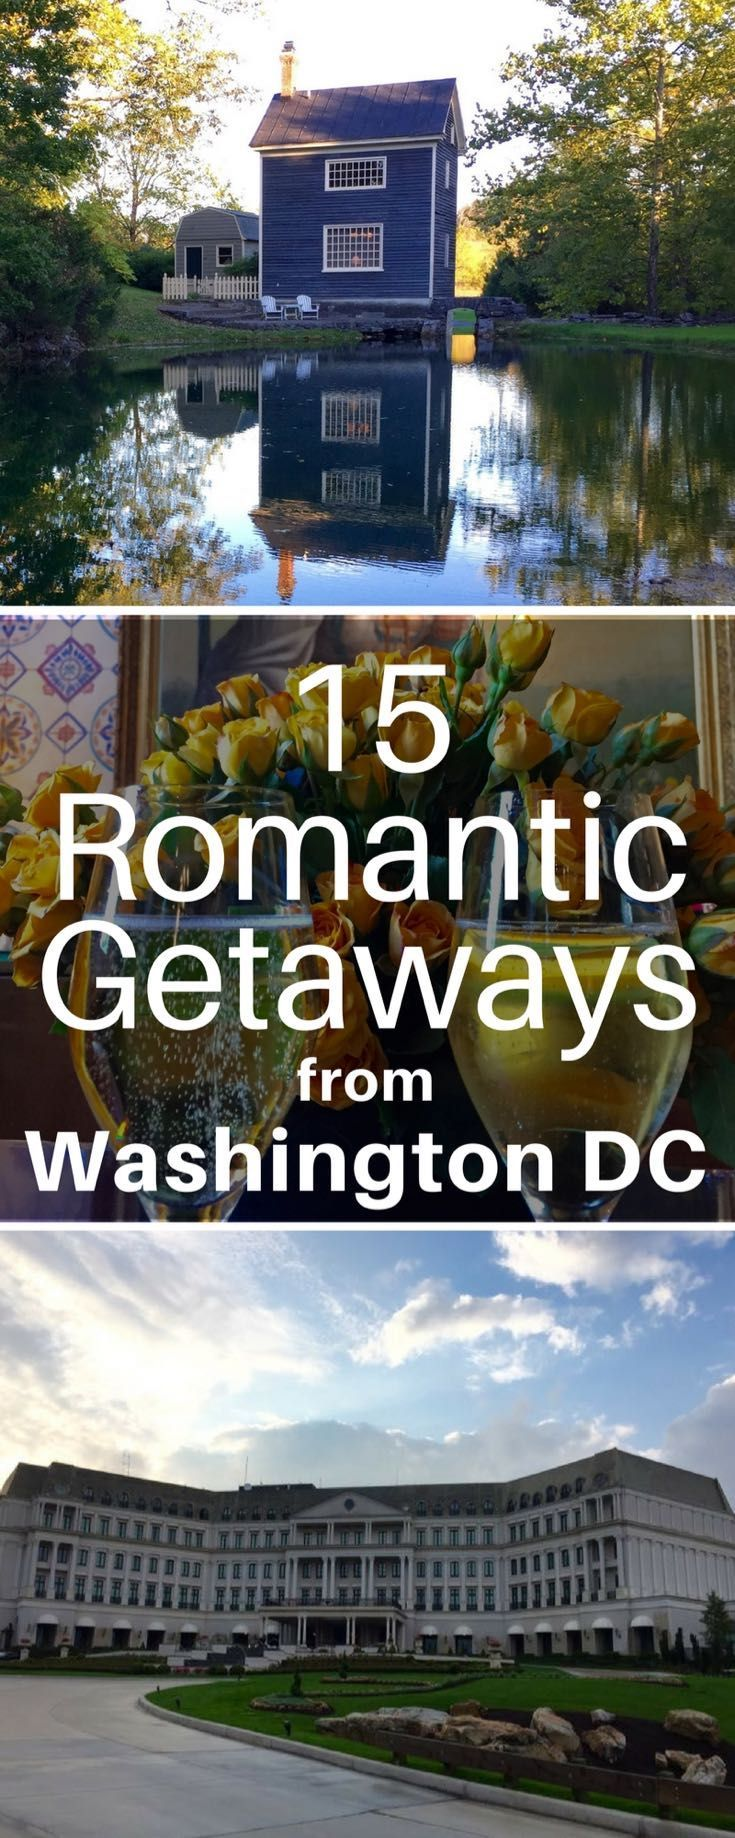 USA Travel | Romantic Getaways | Spark the flames of love with these 15 fabulous romantic getaways from Washington DC, including charming country inns and luxurious city lodging.